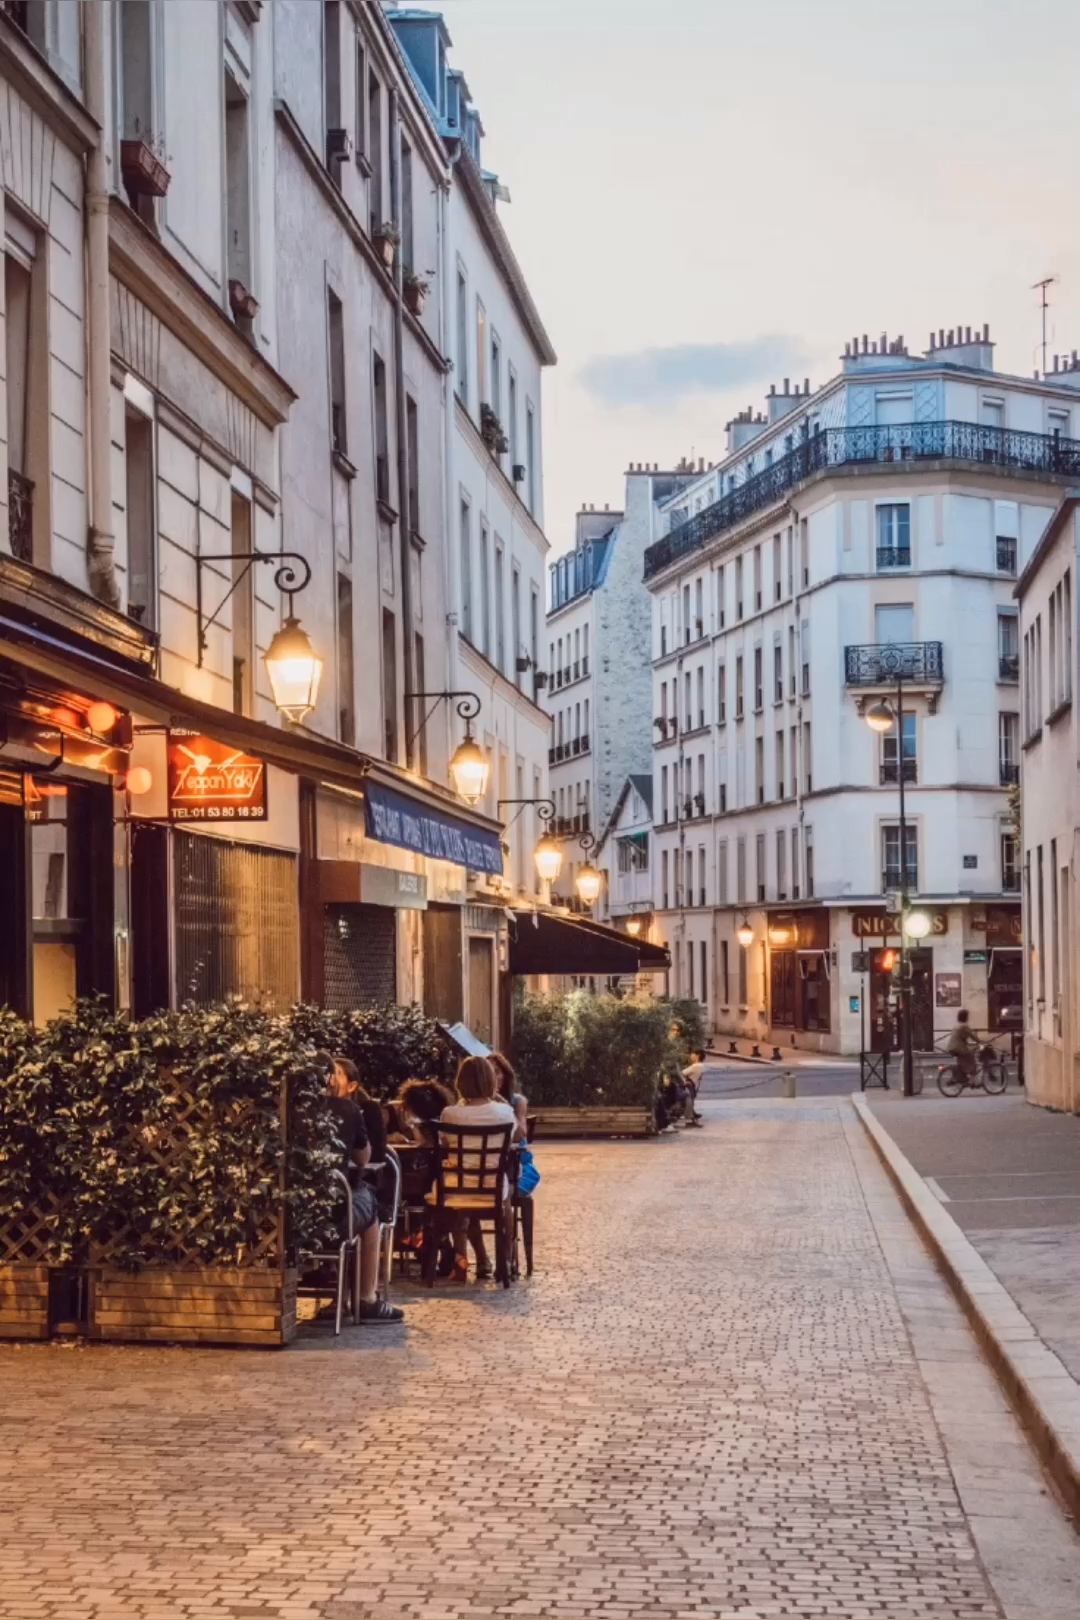 Looking for an off the beaten path guide to Paris? Look no further! Here are non-touristy things to do in Paris such as local restaurants and fun activities. // PIN FOR LATER // #whattodoinparis #thingstodoinparis #paristravel #paris #parisfrance